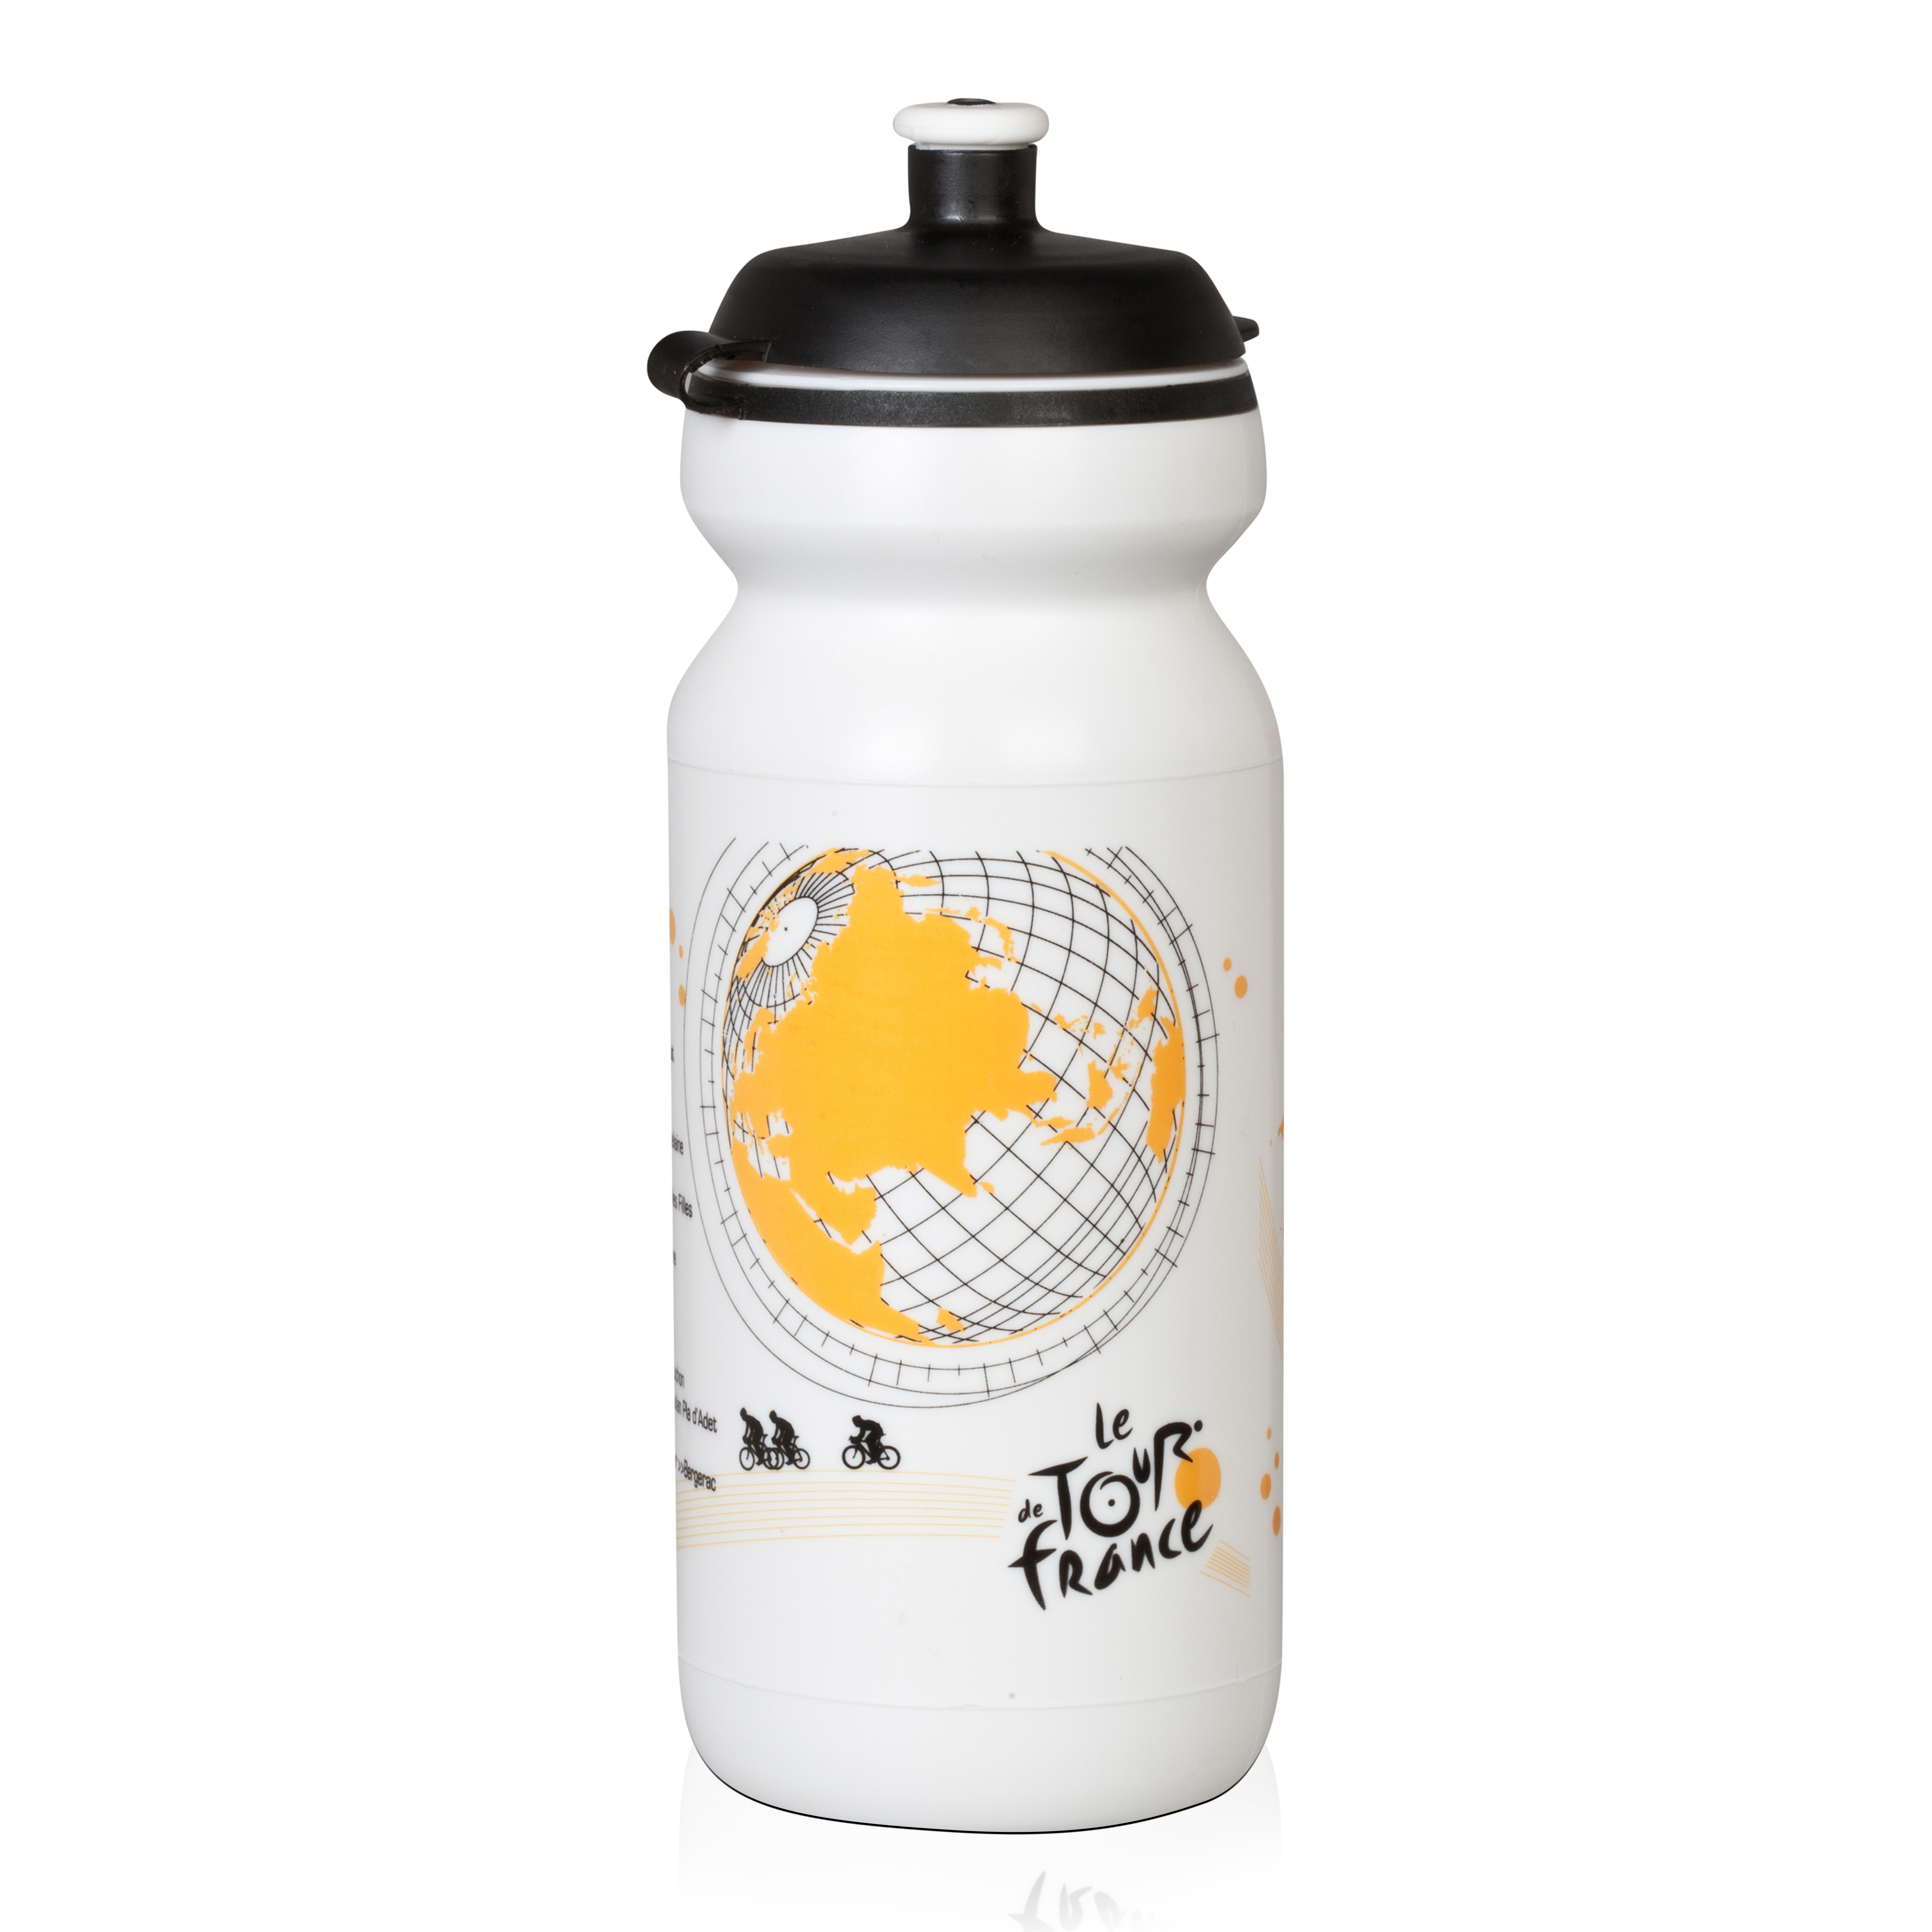 Le Tour de France 600ml Race Waterbottle